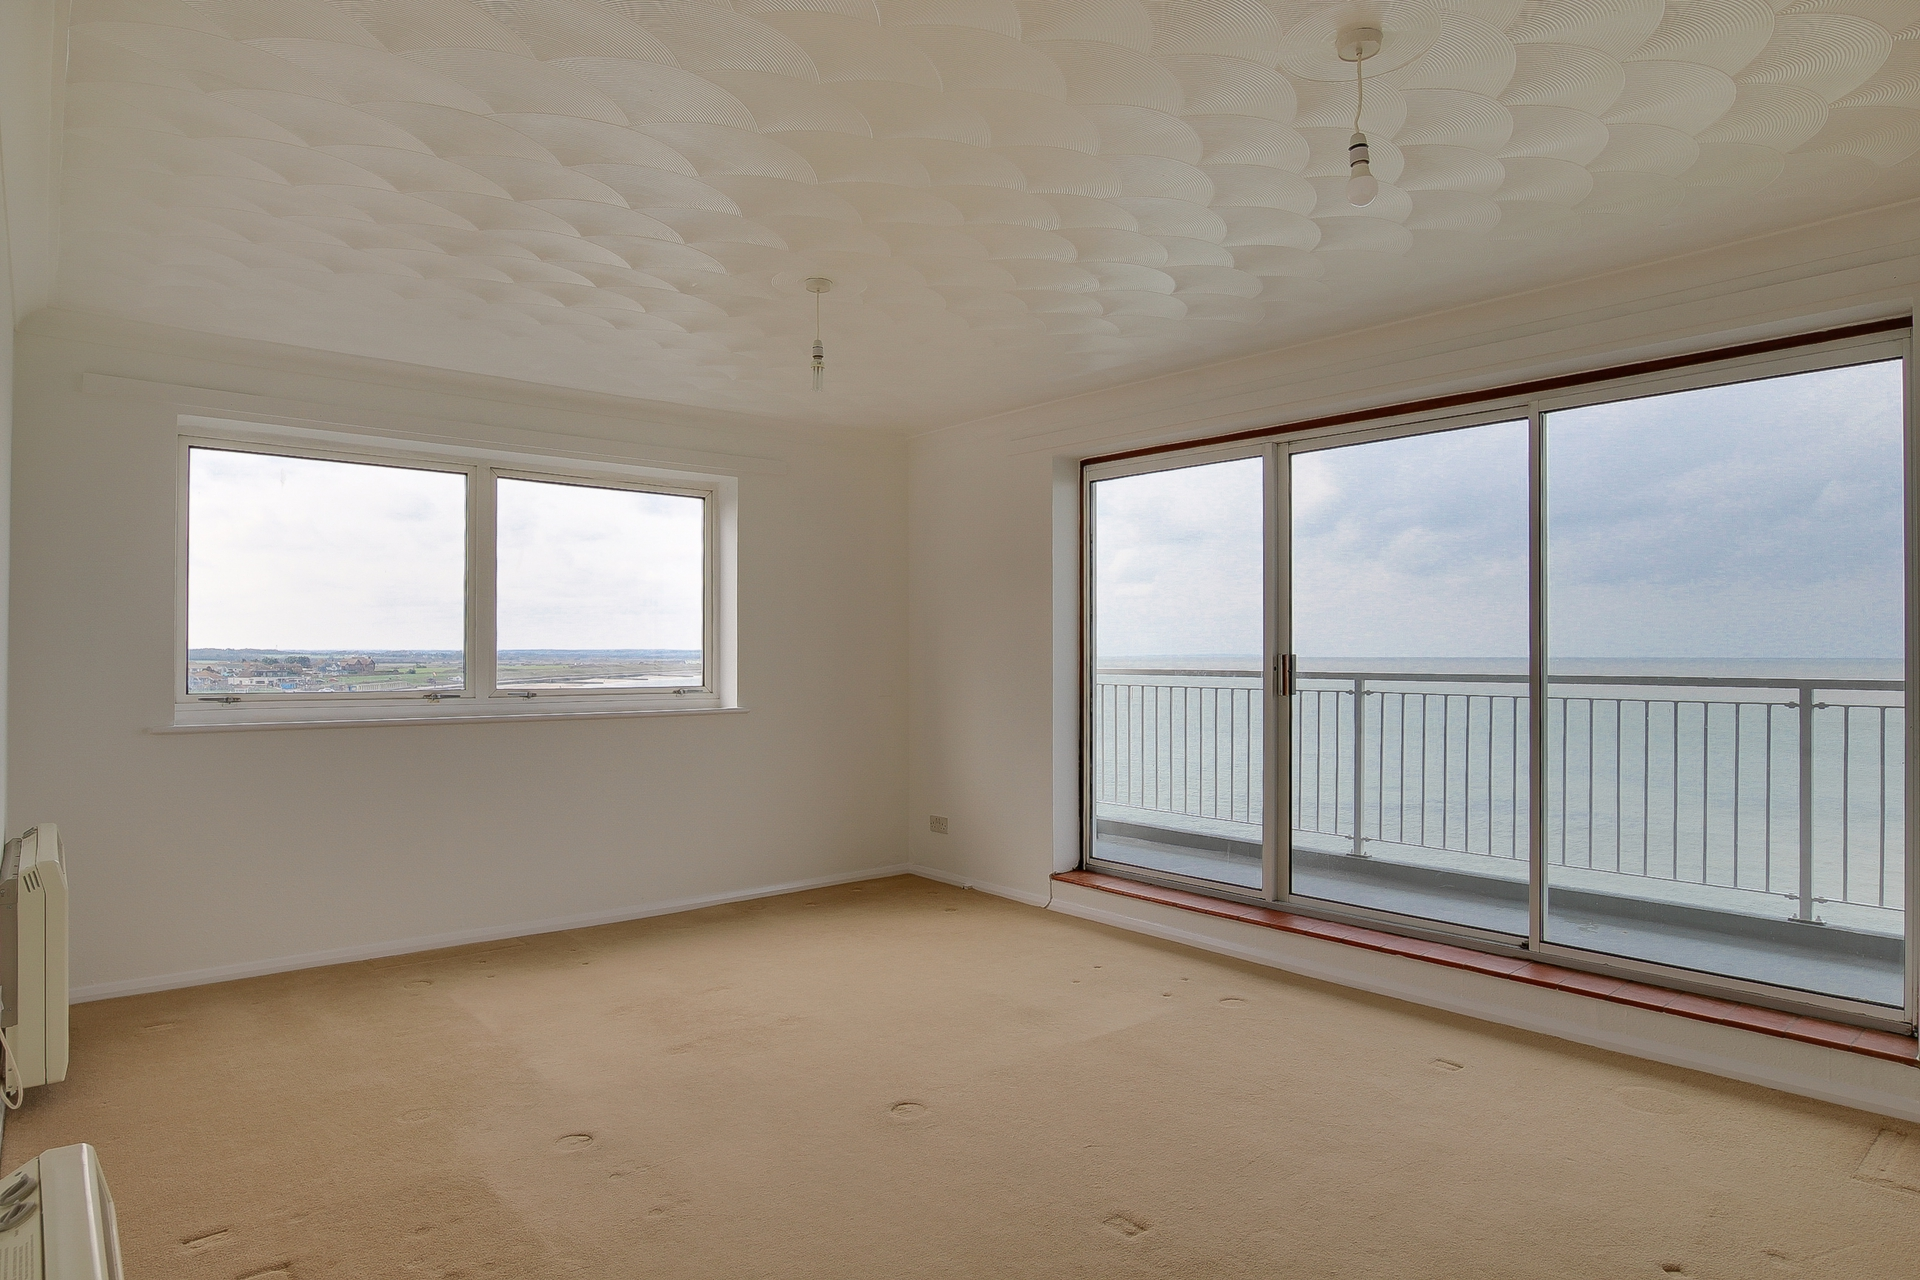 2 bed flat to rent in The Parade, Minnis Bay, CT7  - Property Image 1